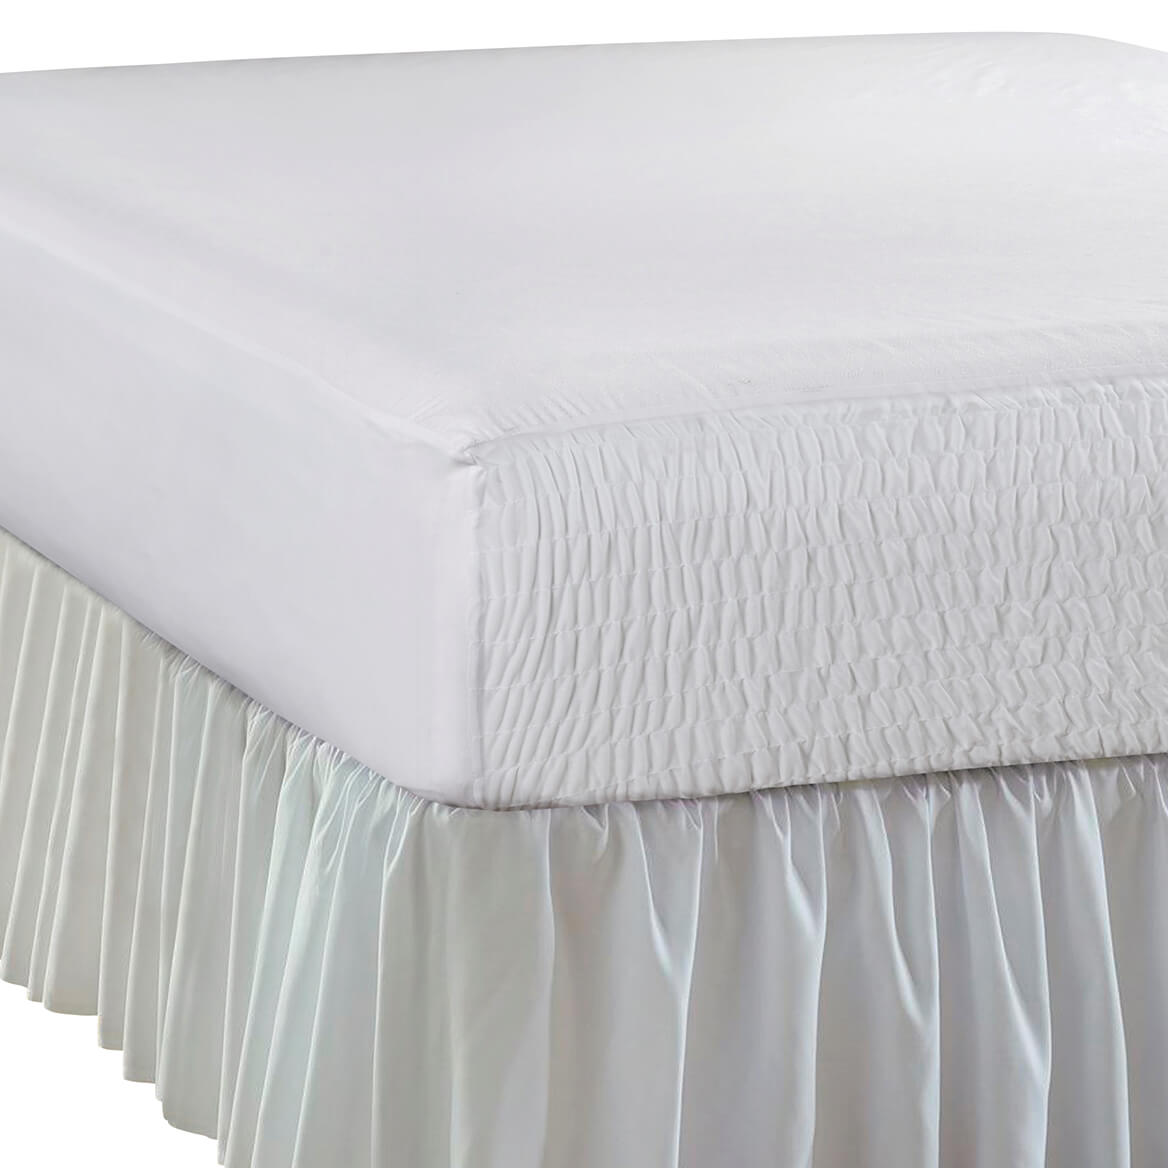 Bed Tite Terry Cloth Waterproof Mattress Protector-371235